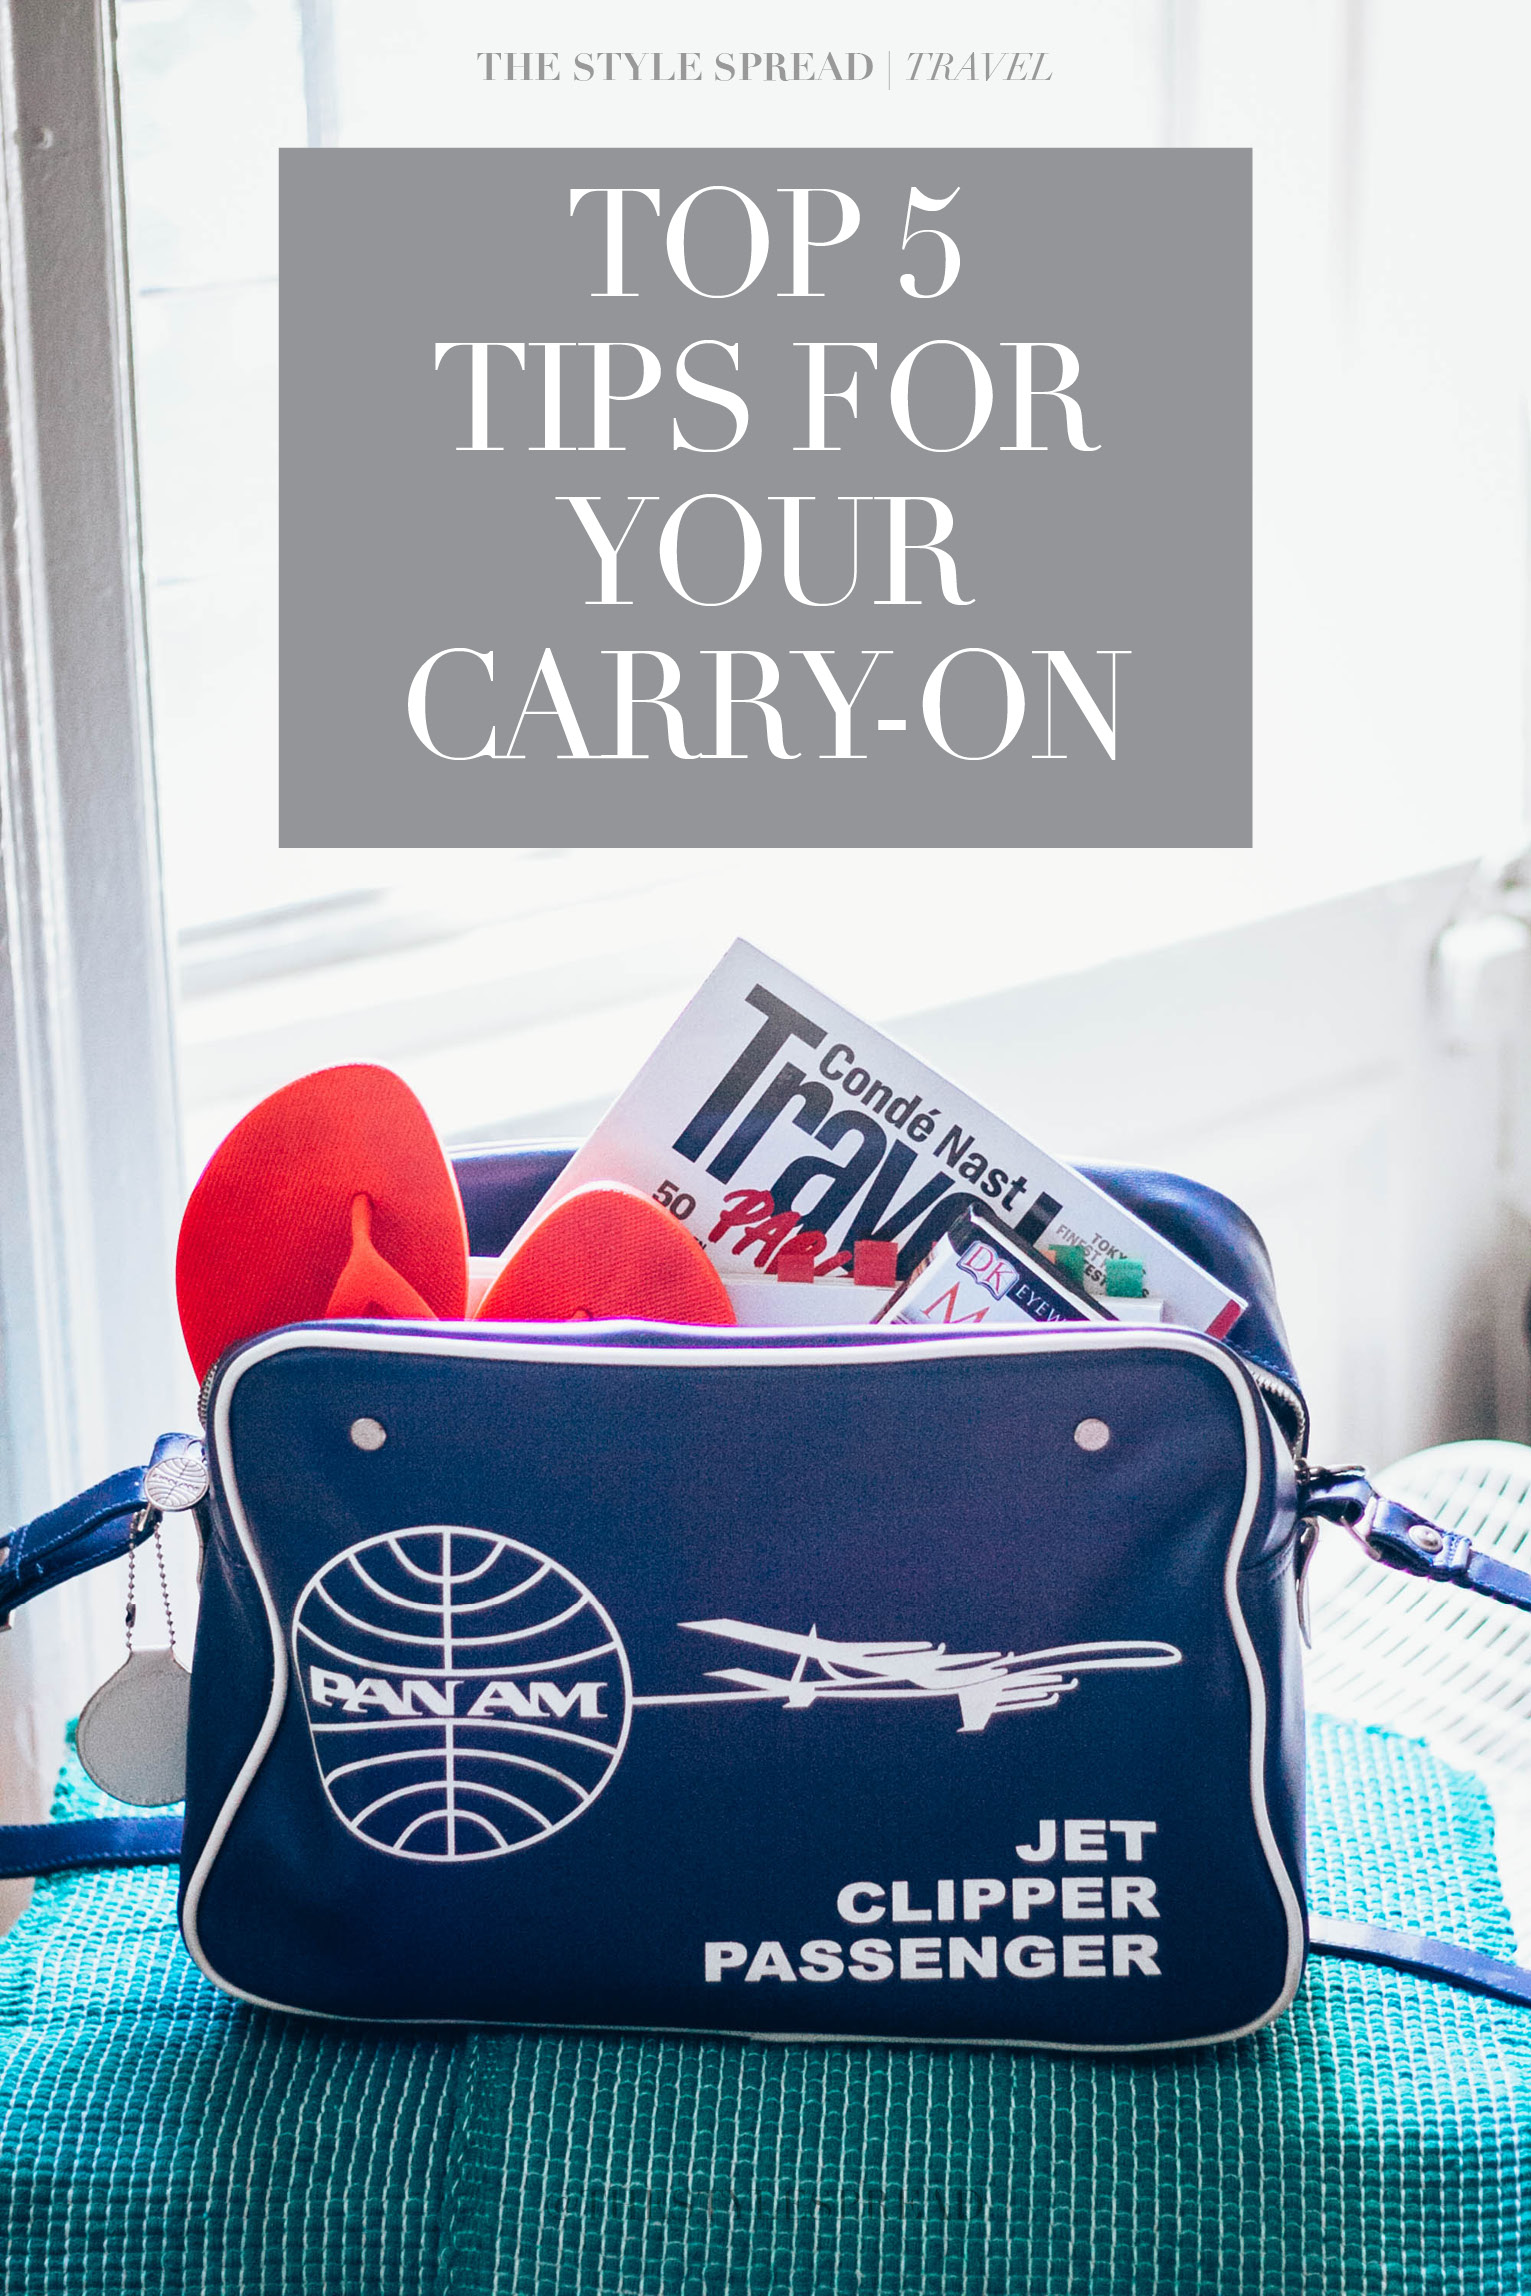 Top 5 tips for packing your carry-on